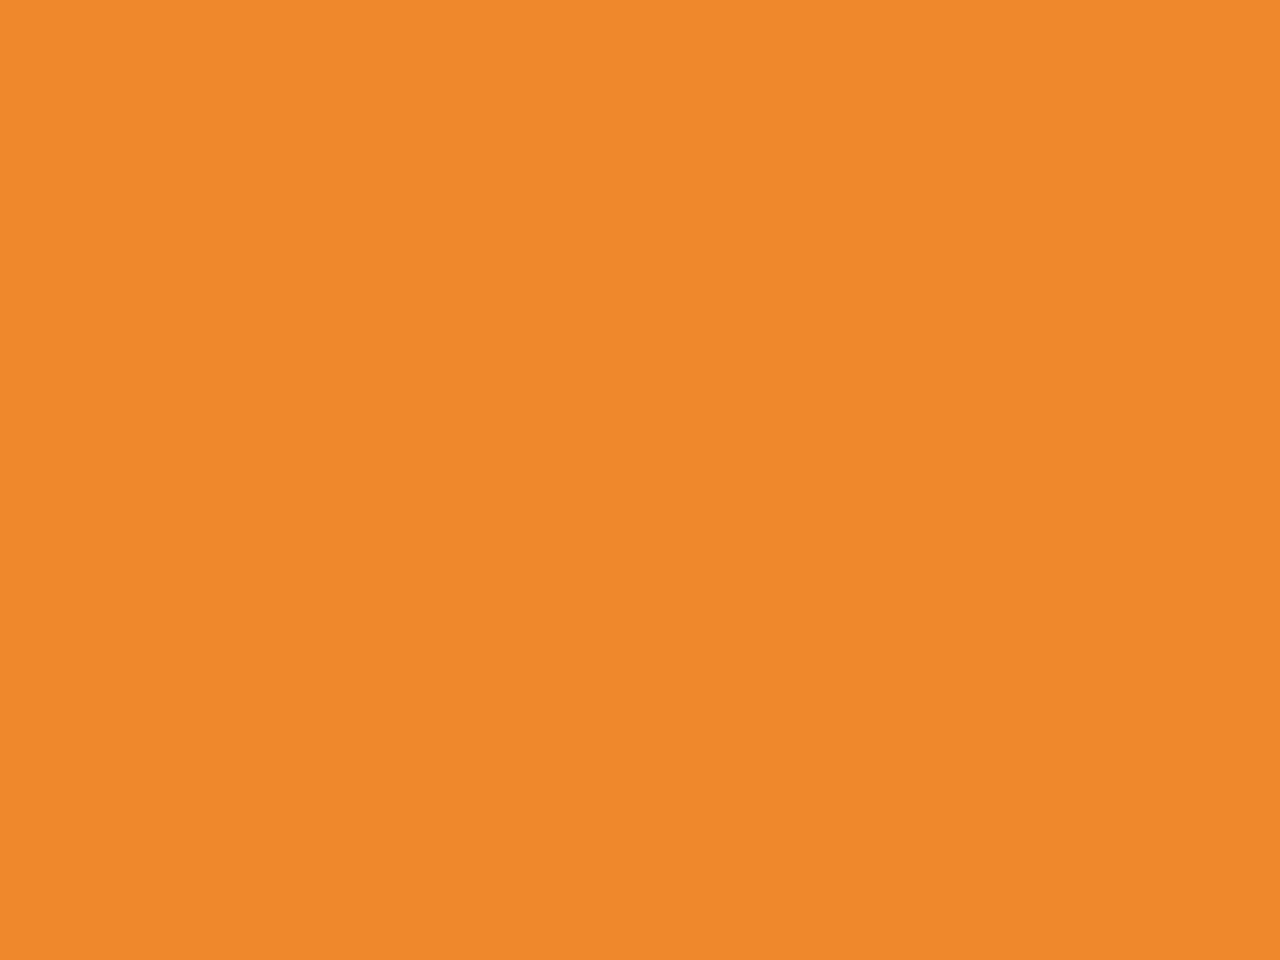 1280x960 Cadmium Orange Solid Color Background